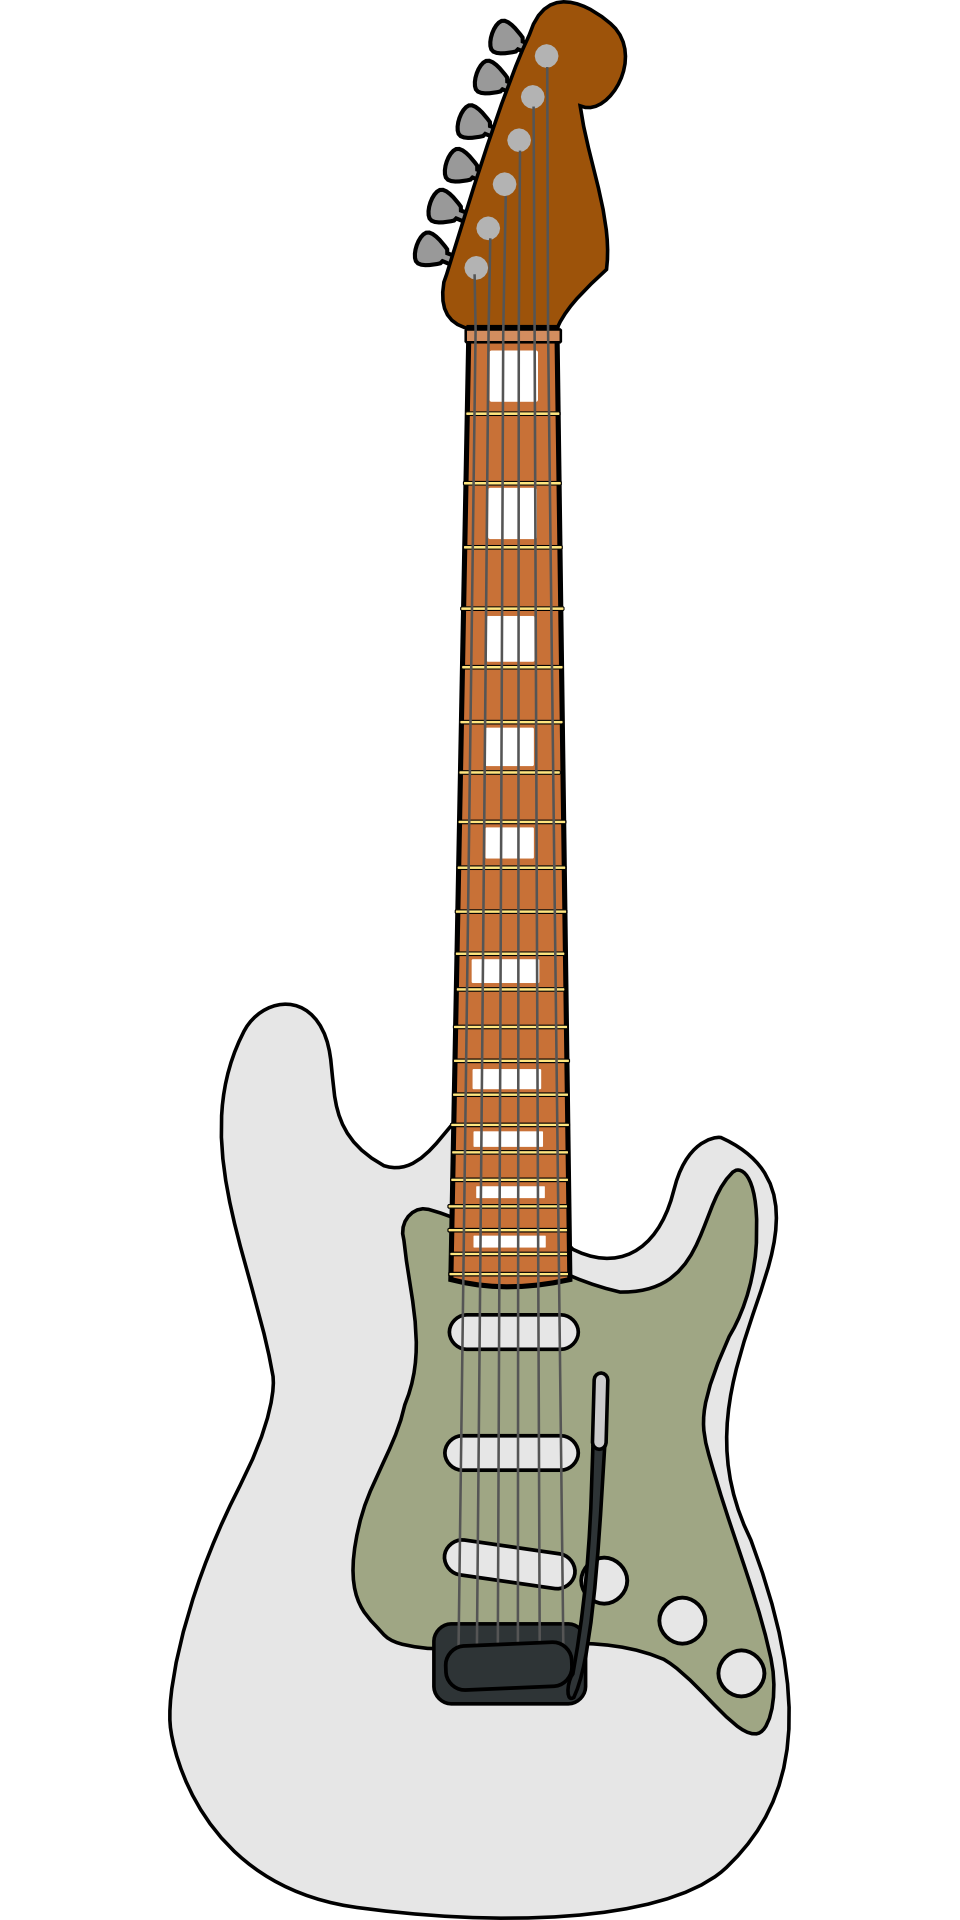 Drawing guitar eletric. Electric grey brown musical